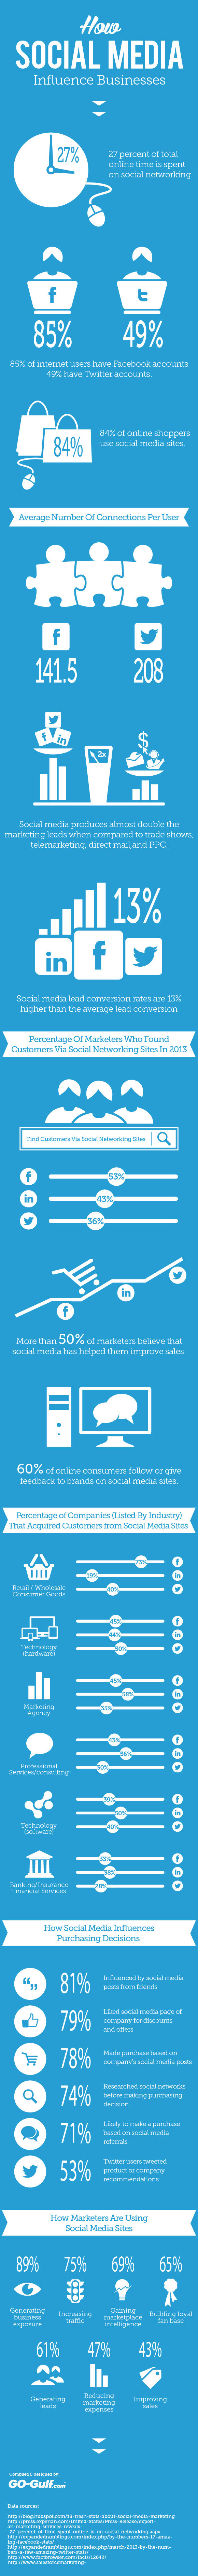 How Social Media Influences Business, Generates Leads And Drives Sales #Infographic